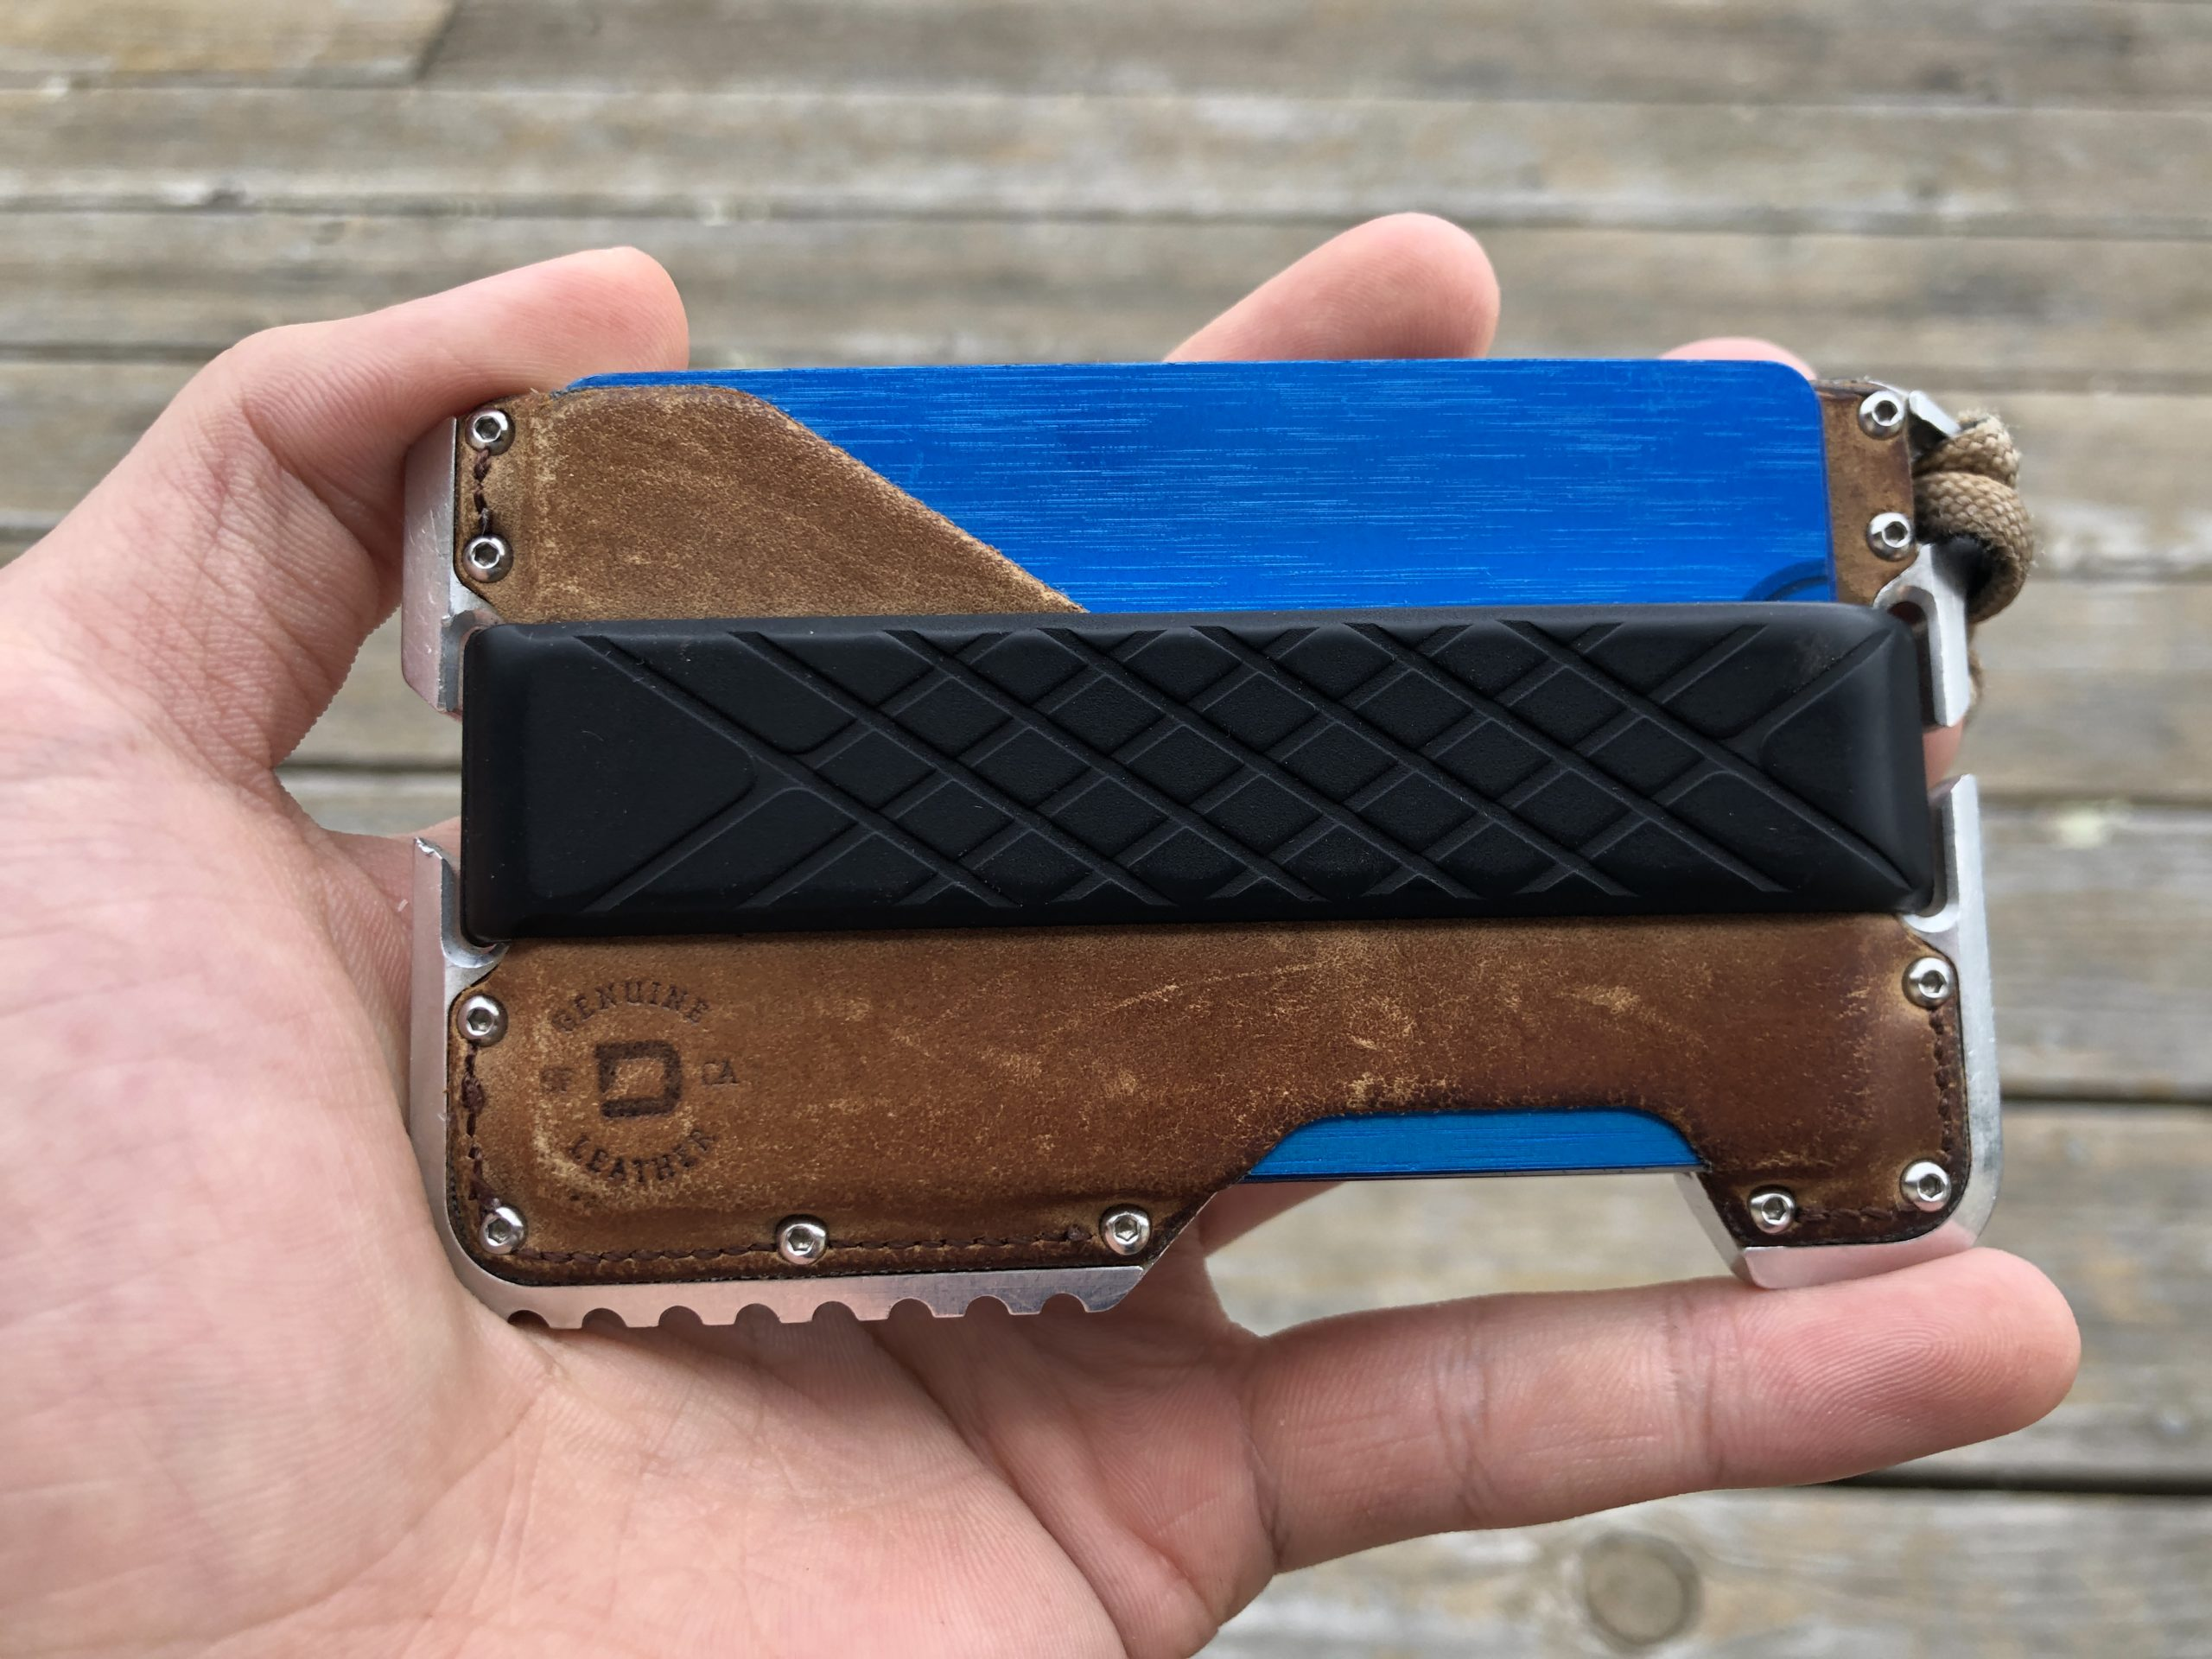 Dango D01 Dapper Wallet: The Definition of Niche